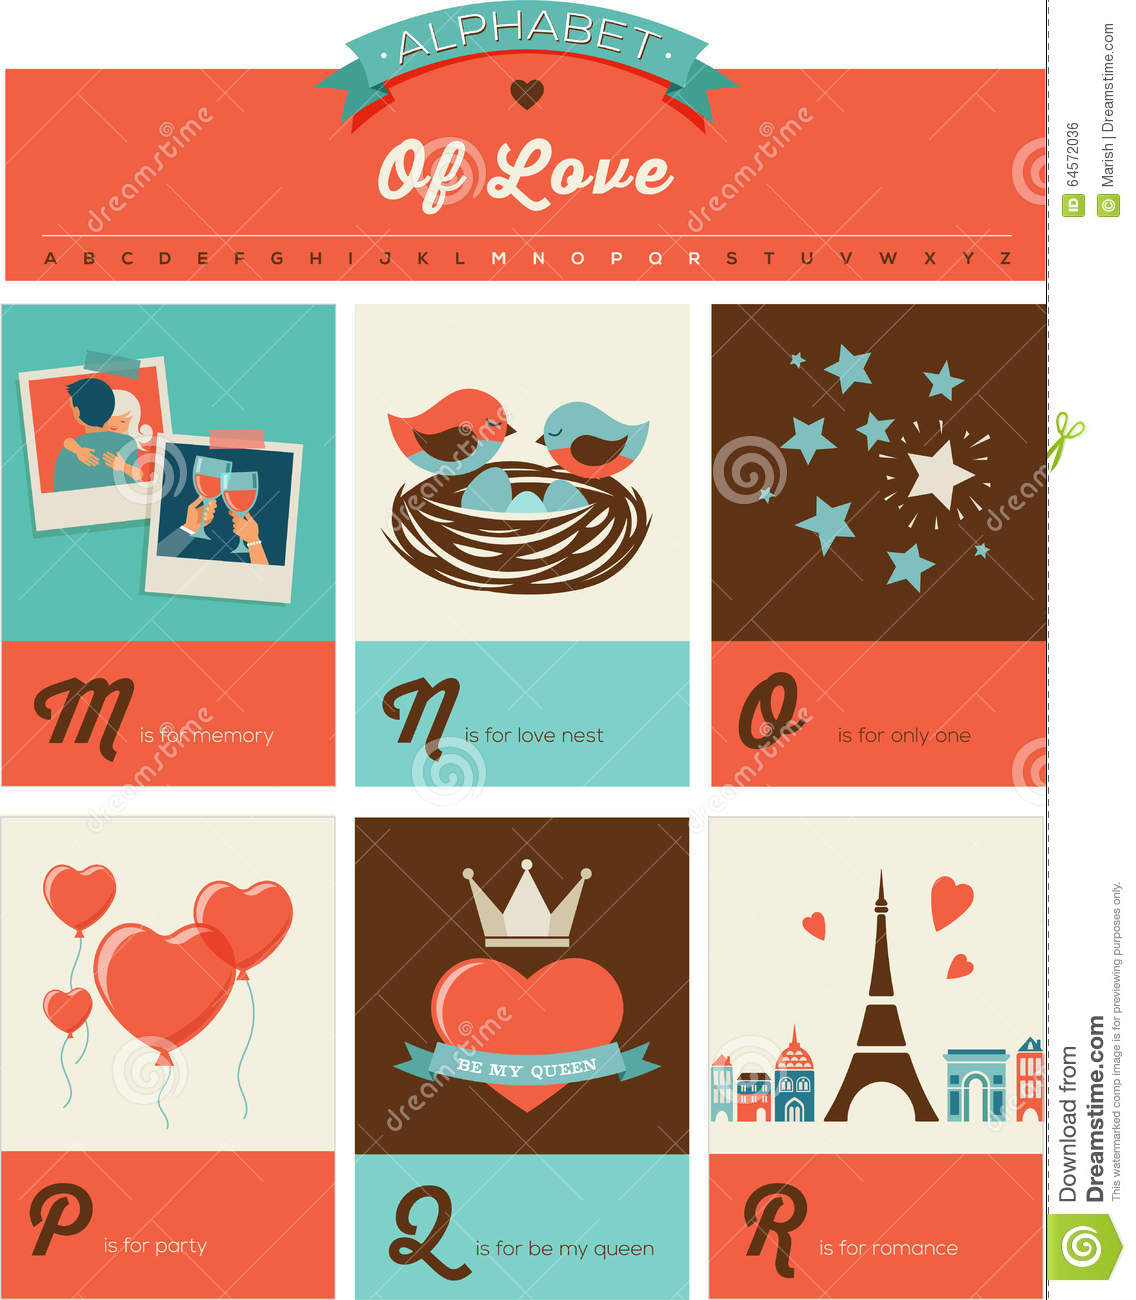 Valentines day abc alphabet poster stock vector illustration of valentines day and love abc alphabet poster and greeting cards m4hsunfo